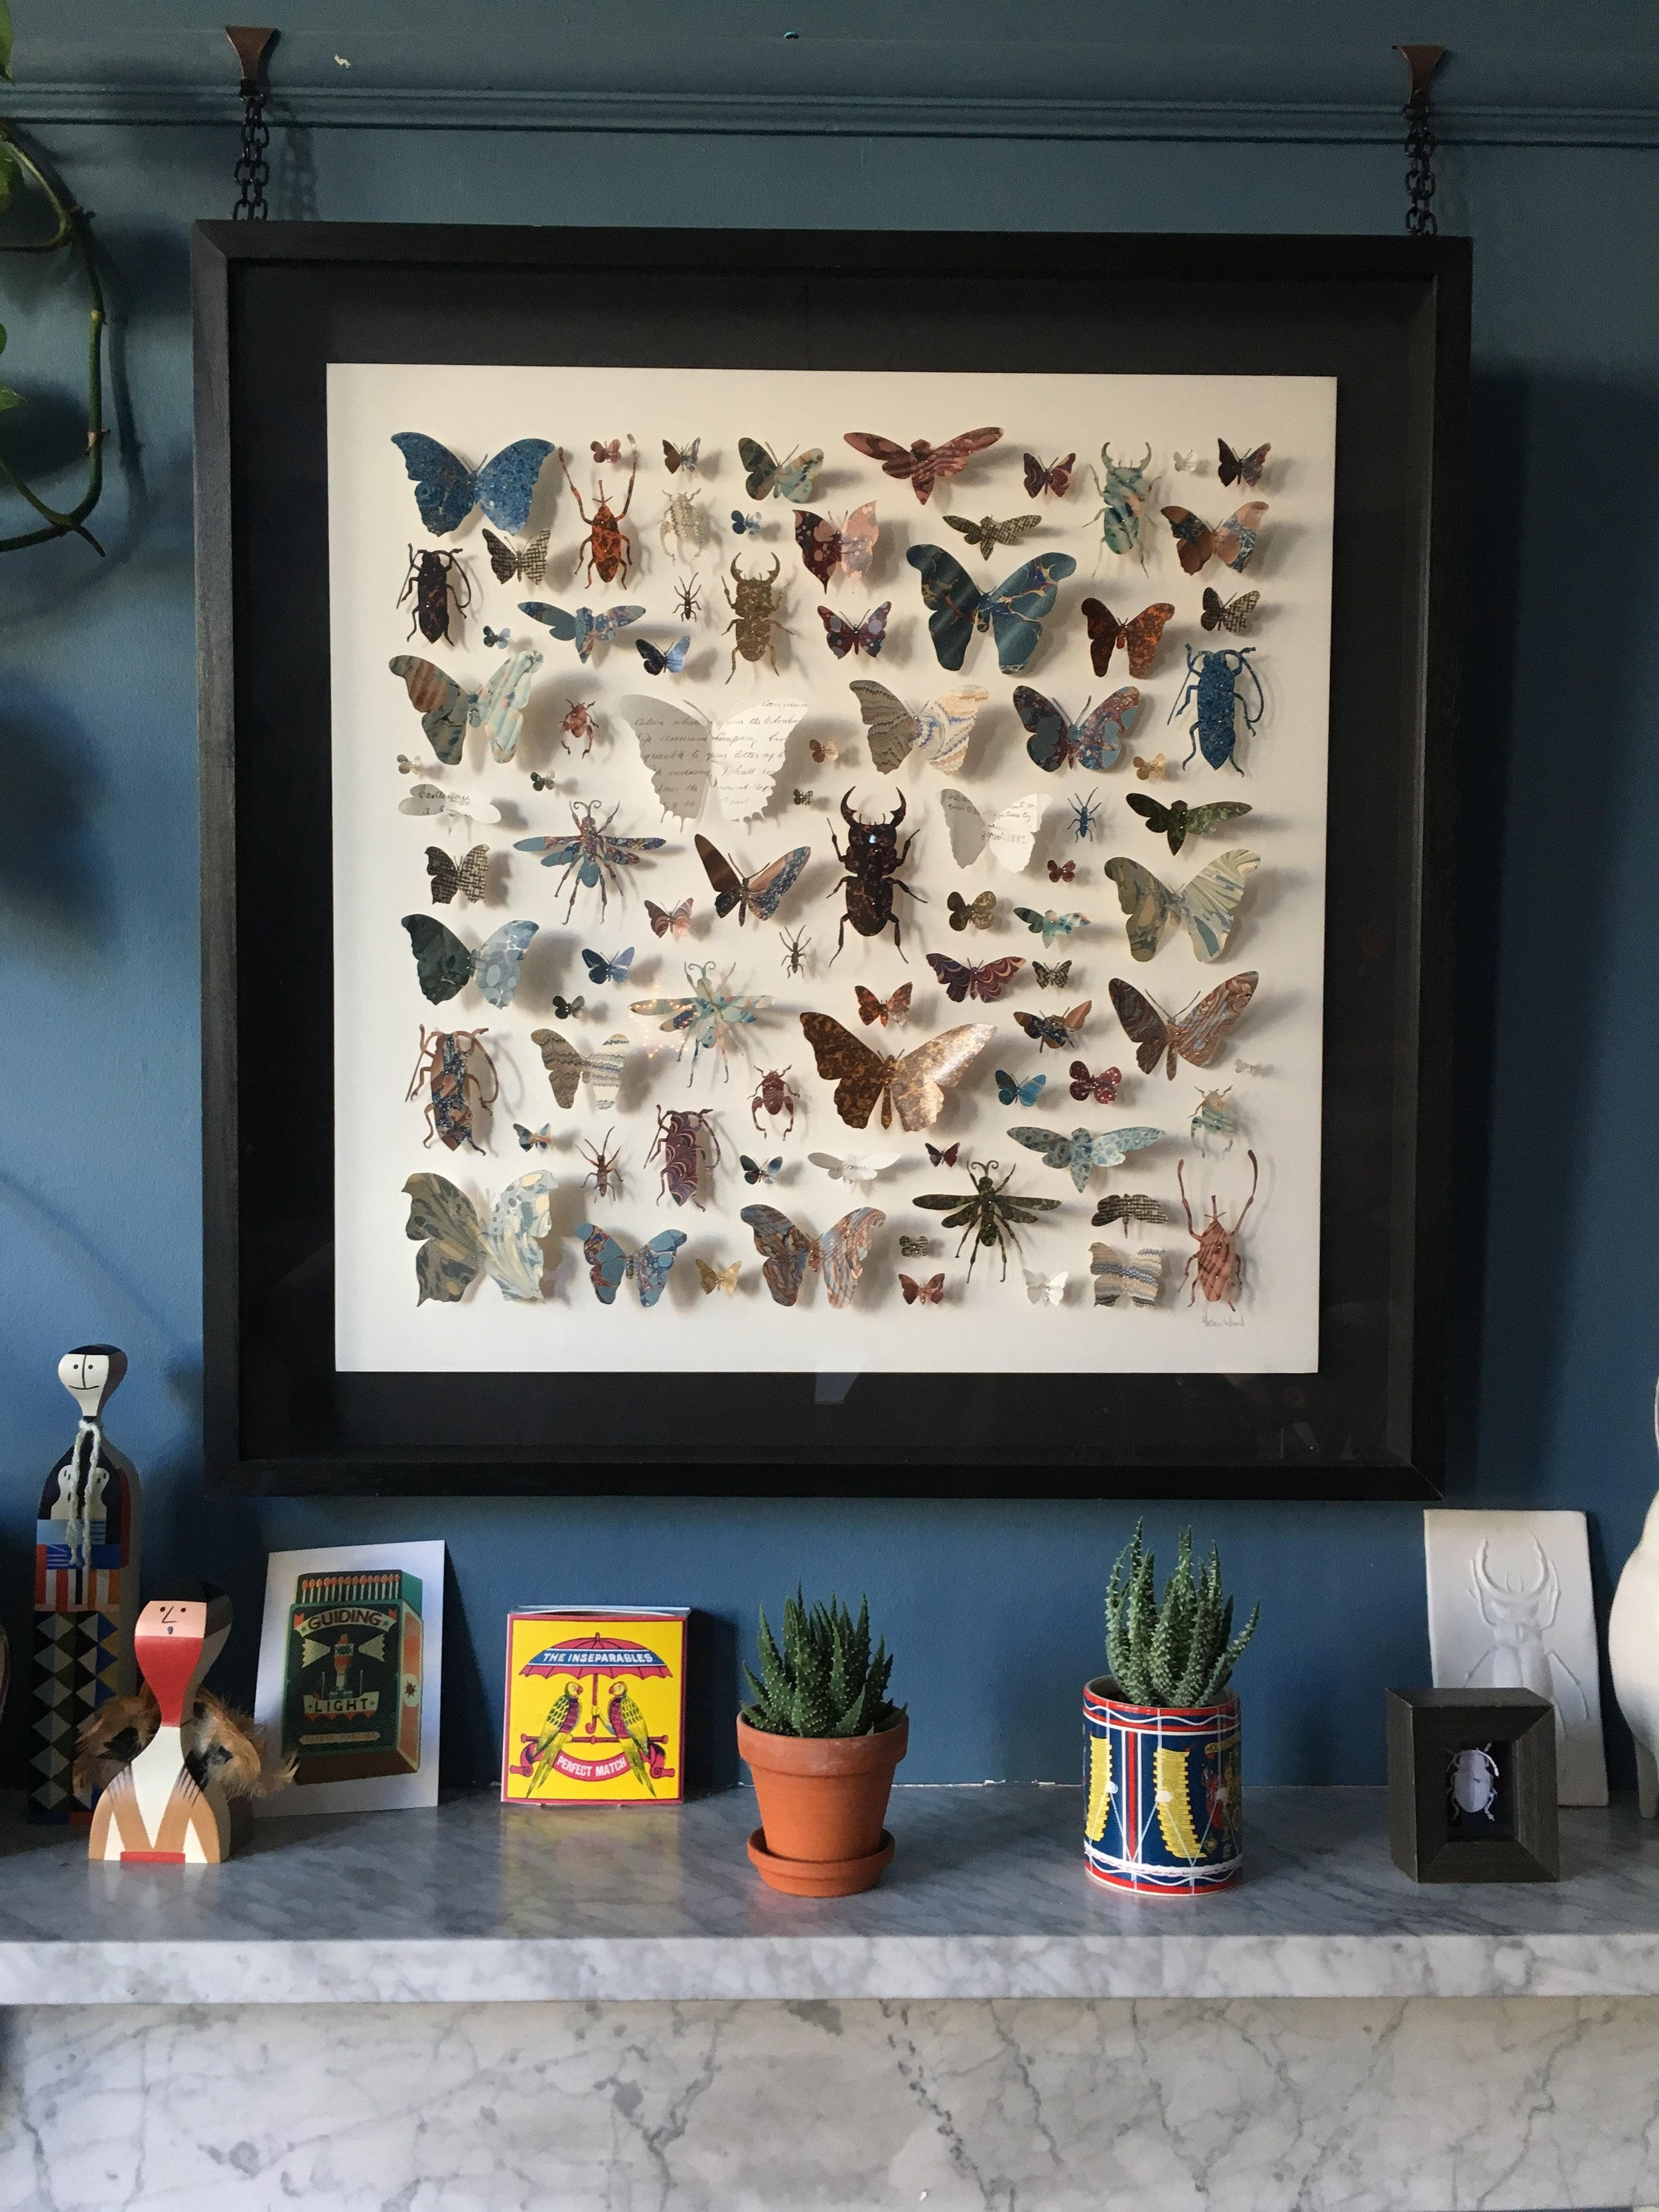 One of Helen's paper entimology pieces up in her living room